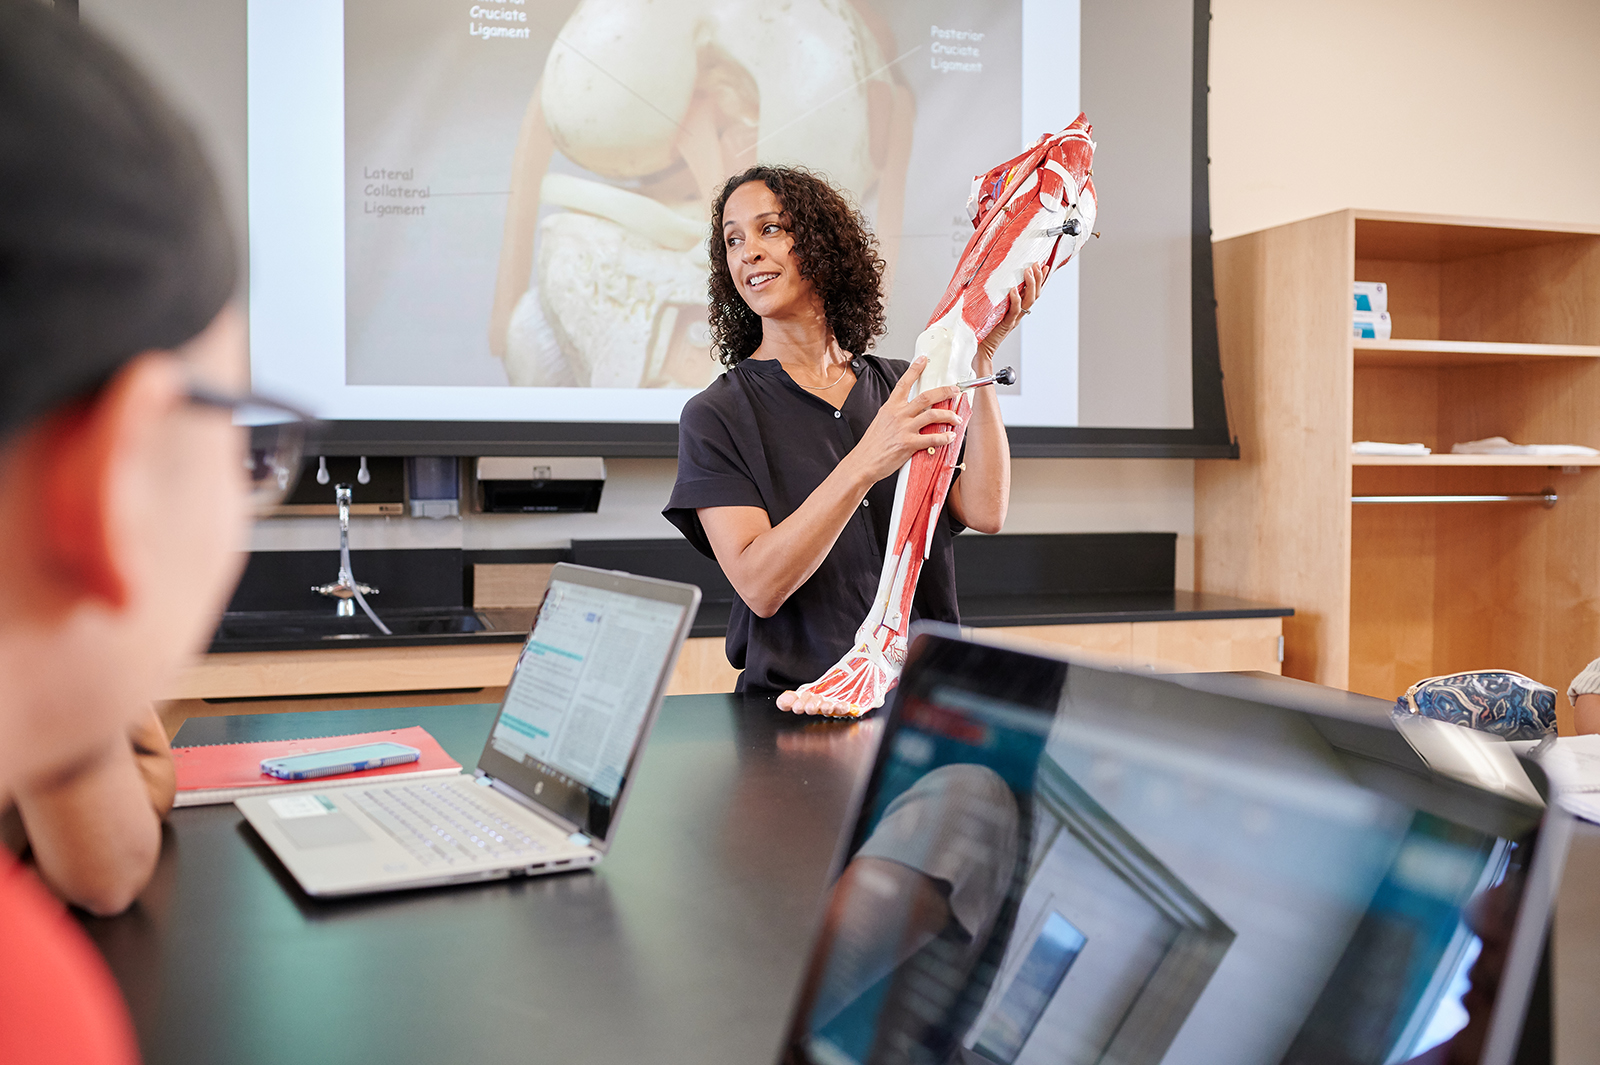 Science professor demonstrating the anatomy of a human leg using a life sized plastic model.